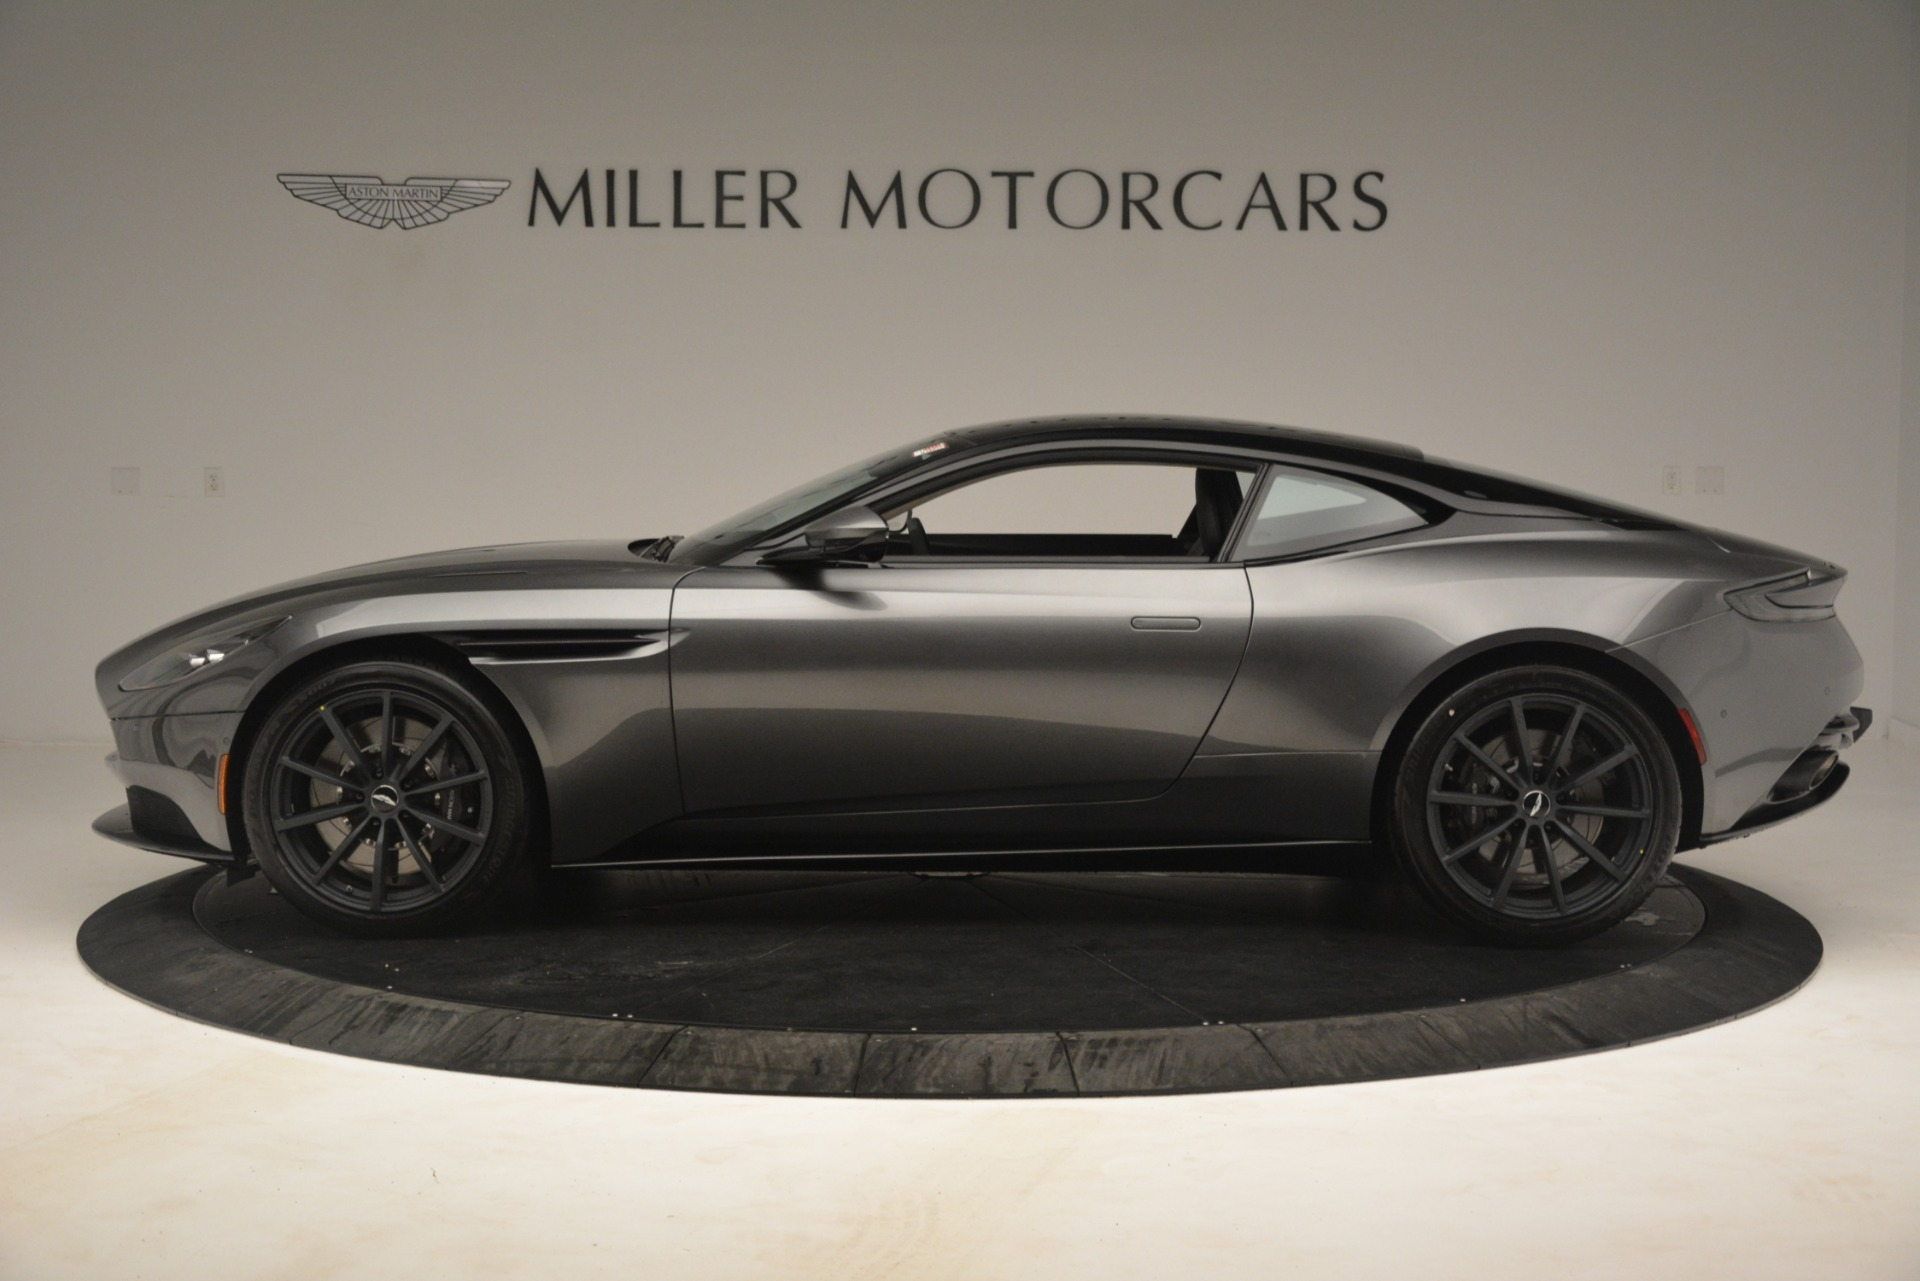 New 2019 Aston Martin DB11 V12 AMR Coupe For Sale In Greenwich, CT 3123_p3